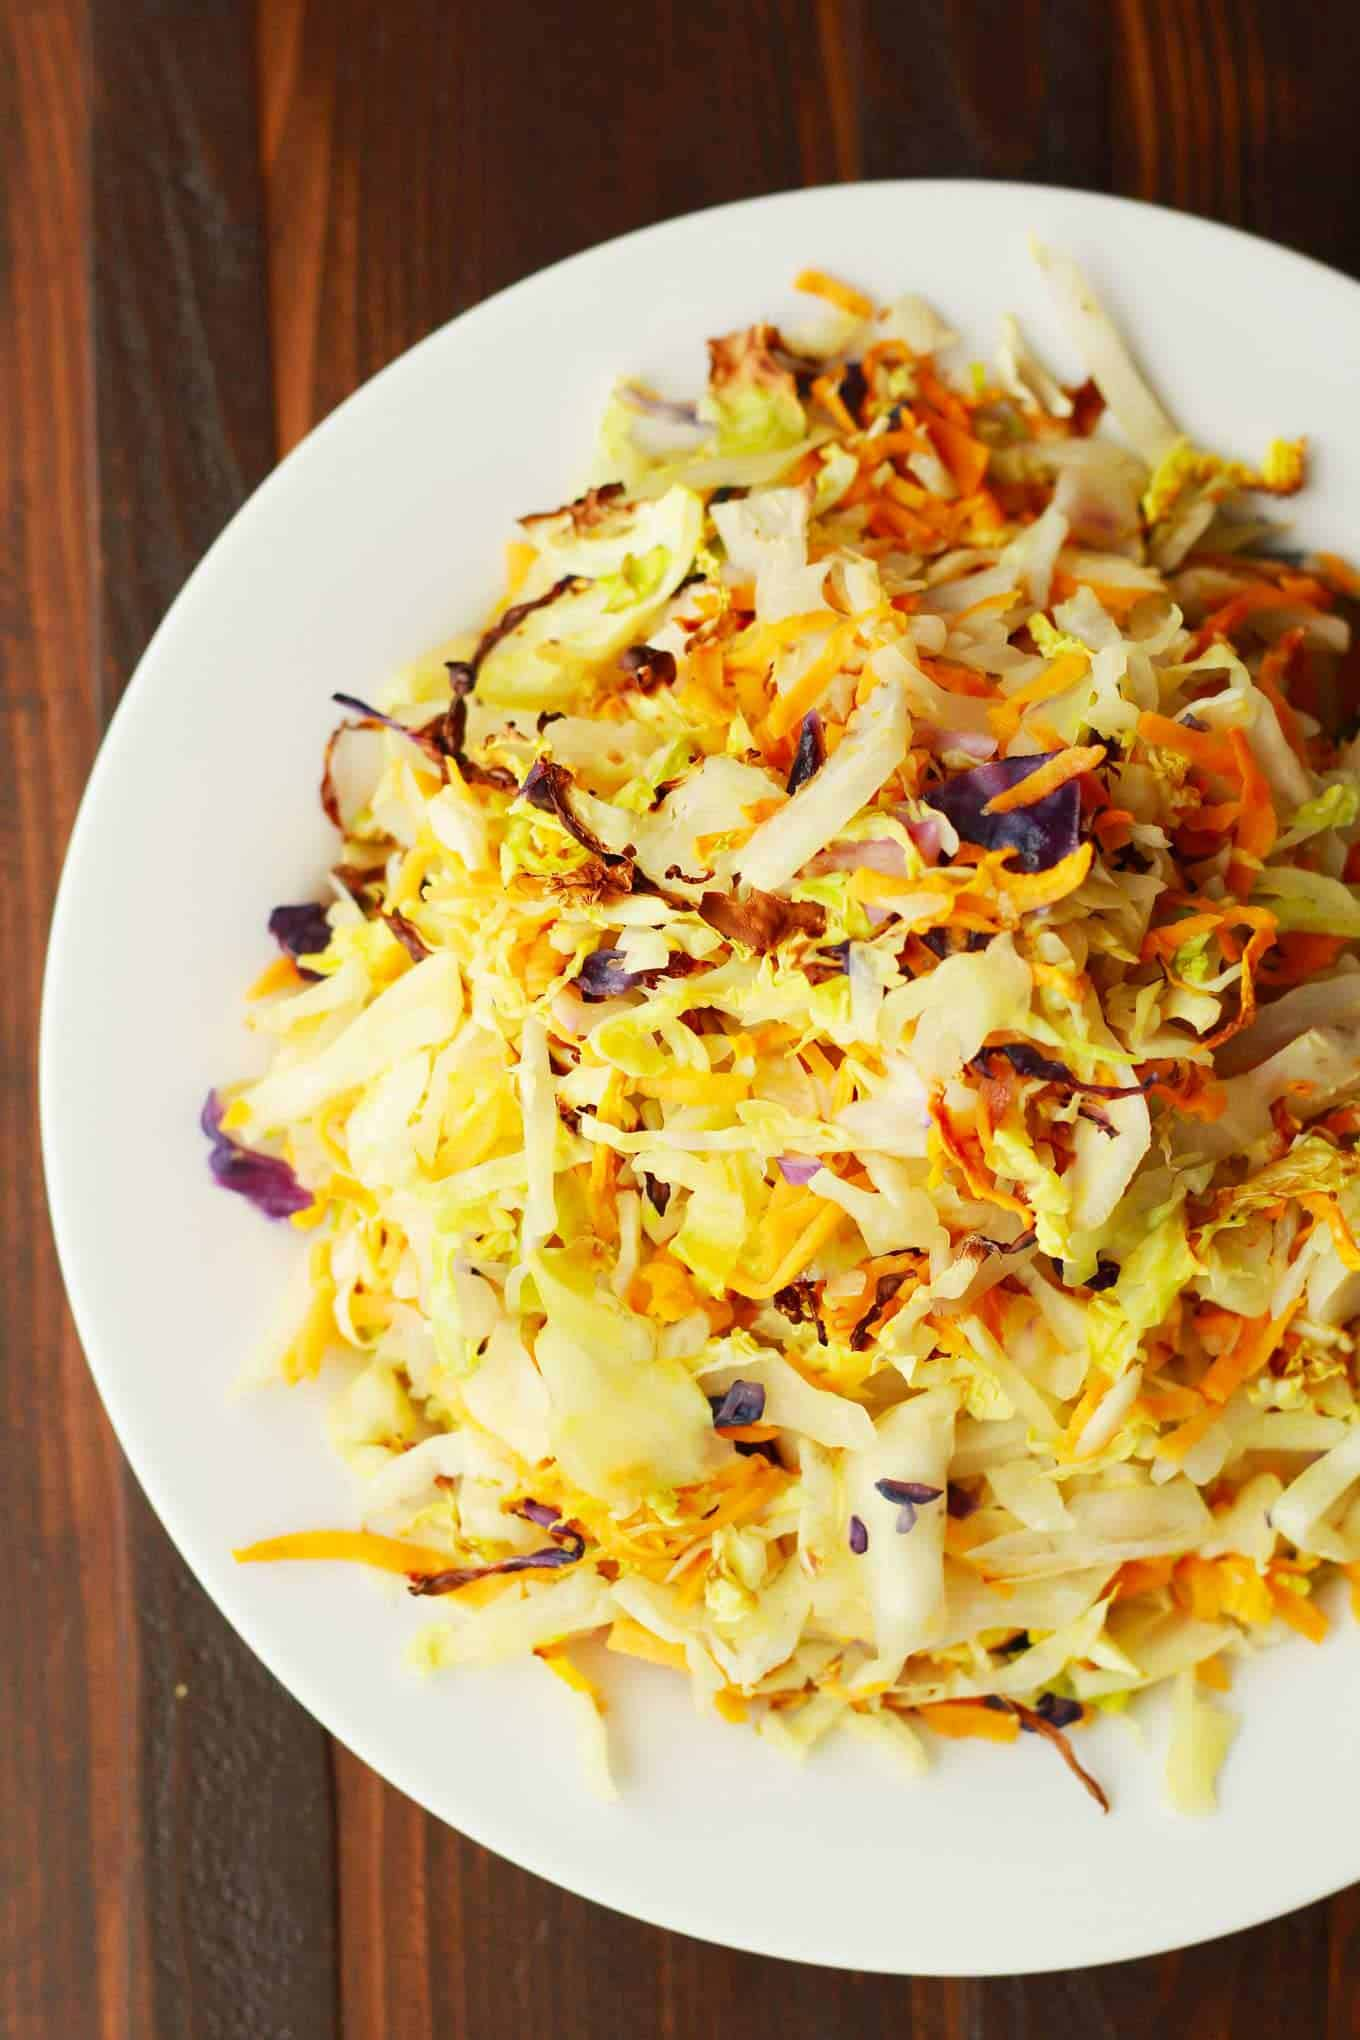 Roasted winter slaw + 15 Farmers market recipes to make in January! Delicious, winter, (mostly) healthy recipes made with fresh, seasonal produce from your local farmers market or CSA bin. Eat local!